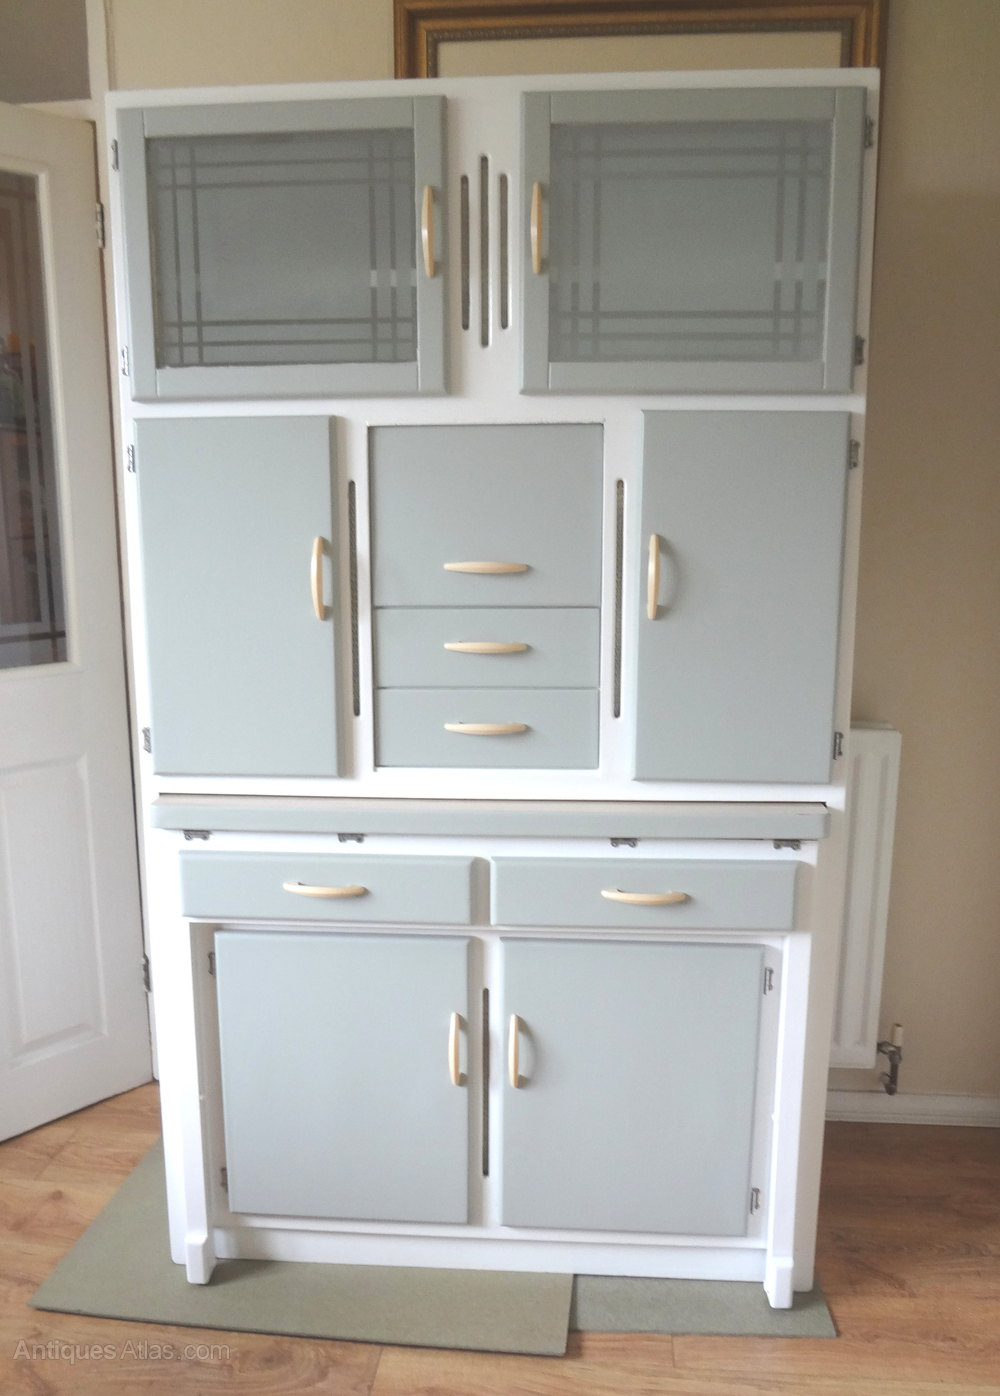 Antiques atlas kitchen larder cabinet 1950s for Vintage kitchen units uk